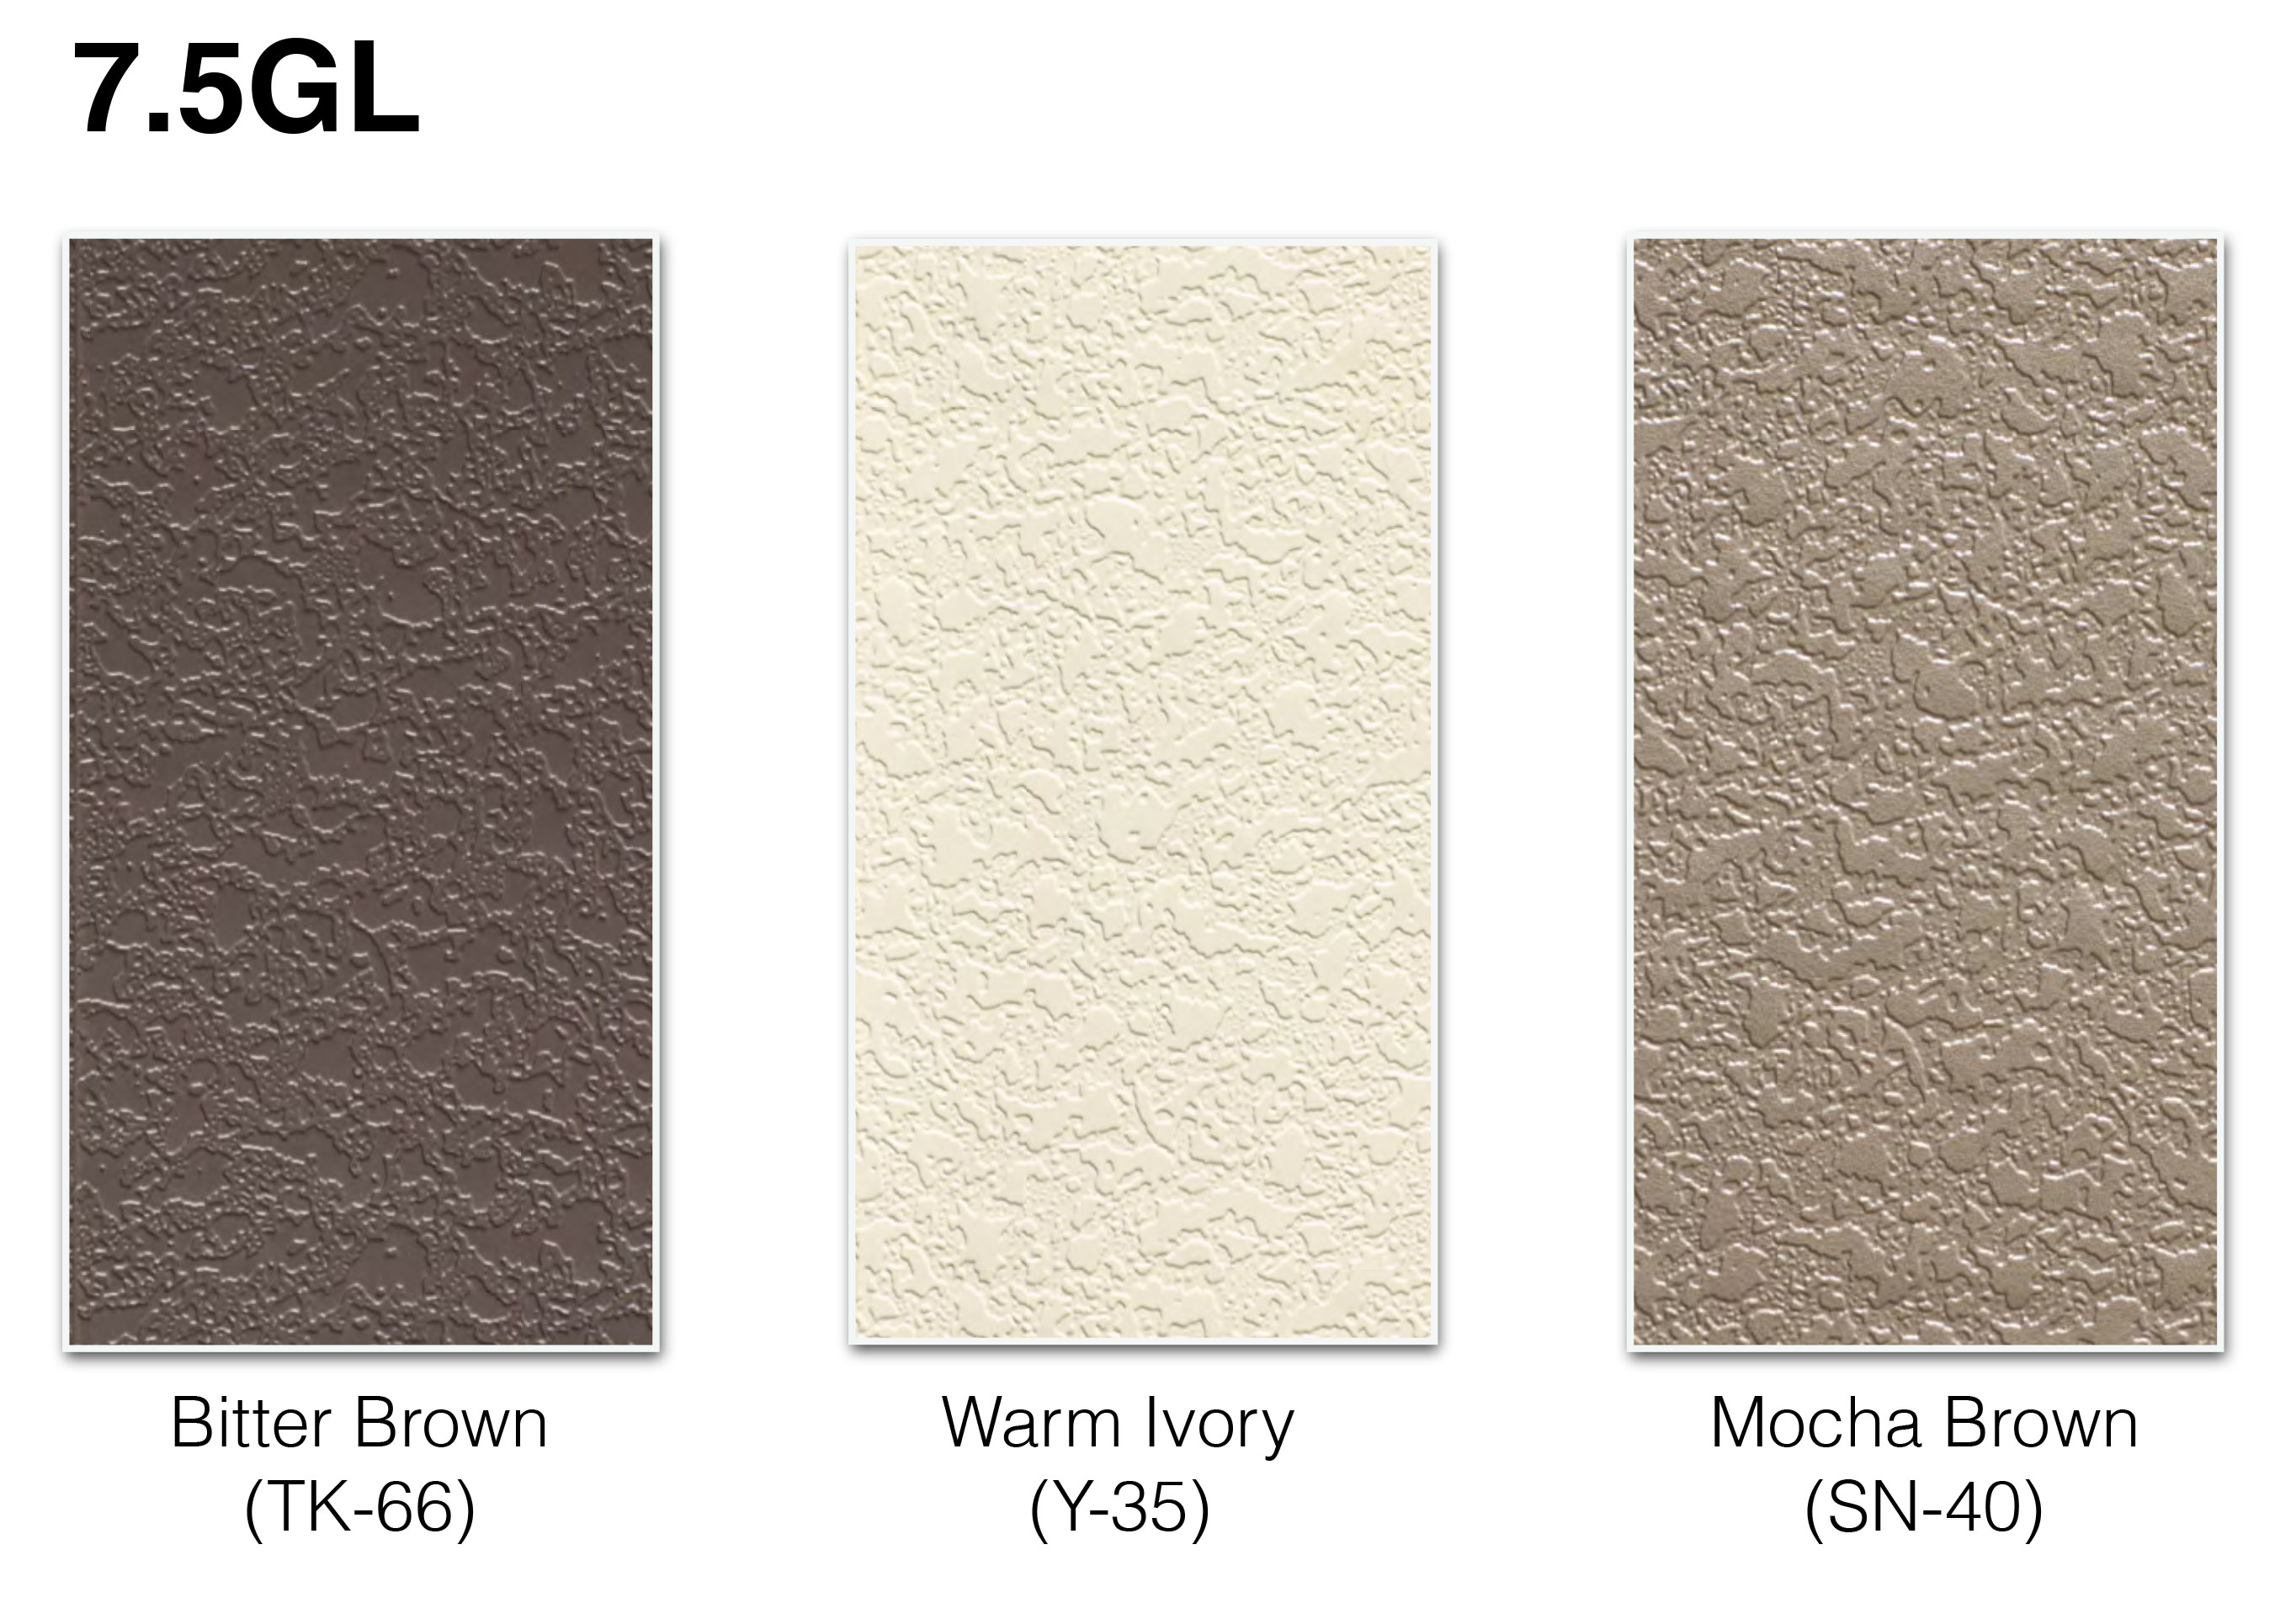 wide range of cladding options to choose from